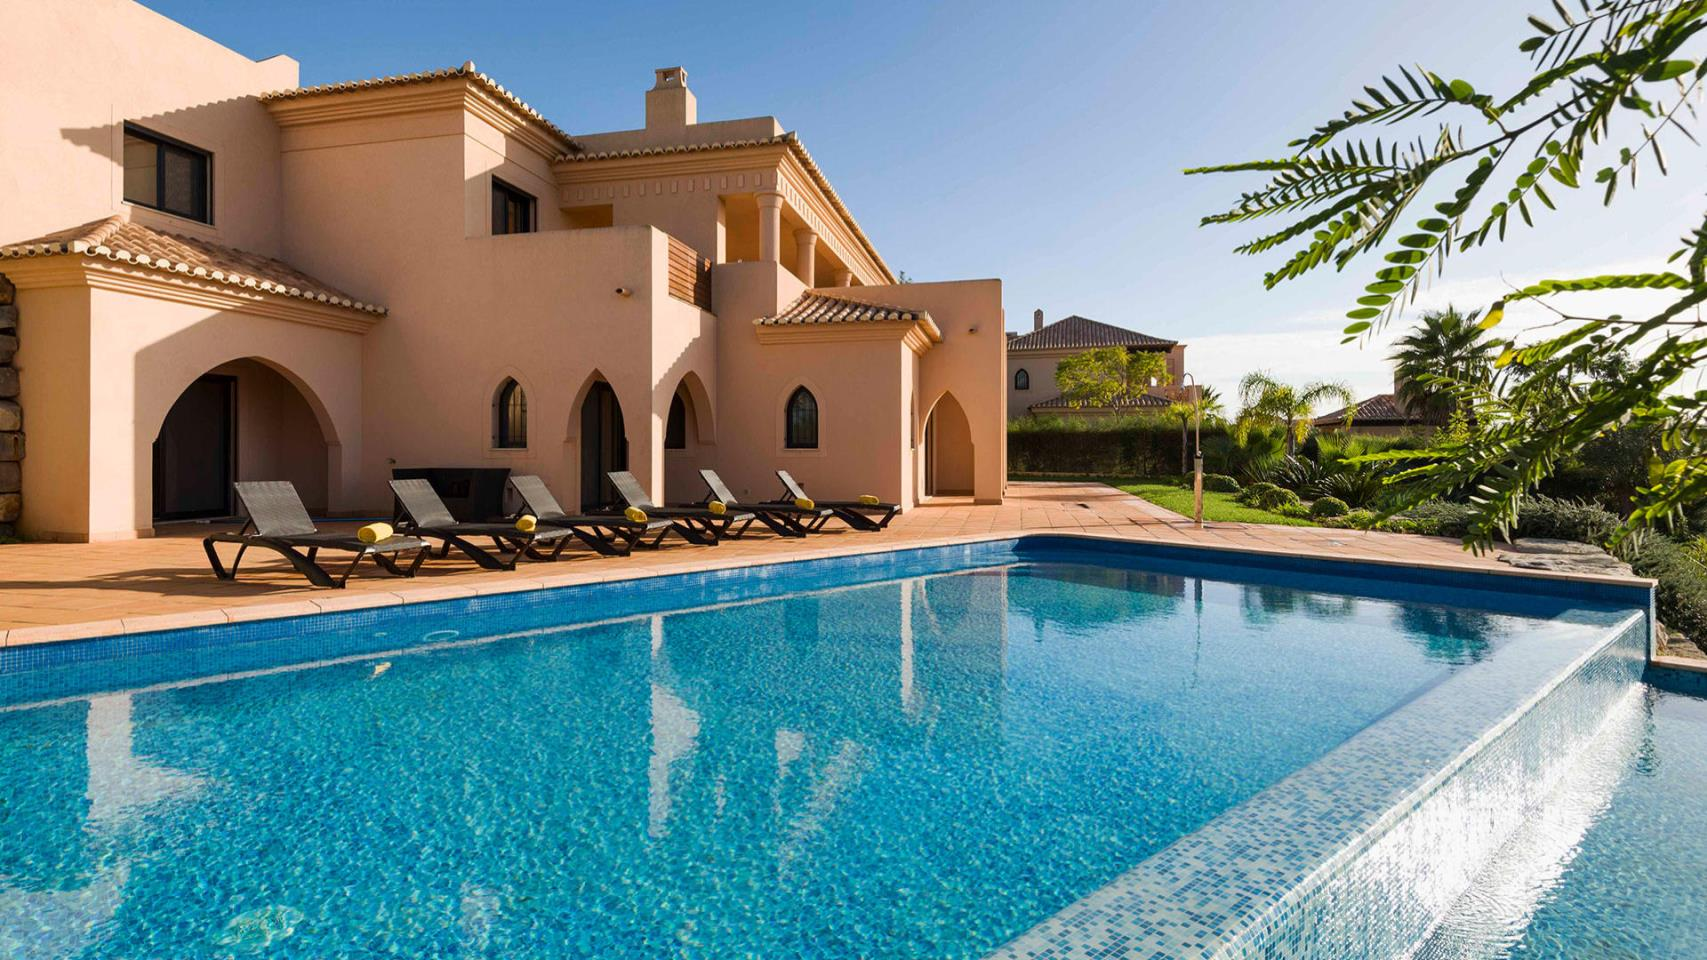 Amendoeira Golf Resort 4* - 7 Nights Bed & Breakfast, Unlimited Golf